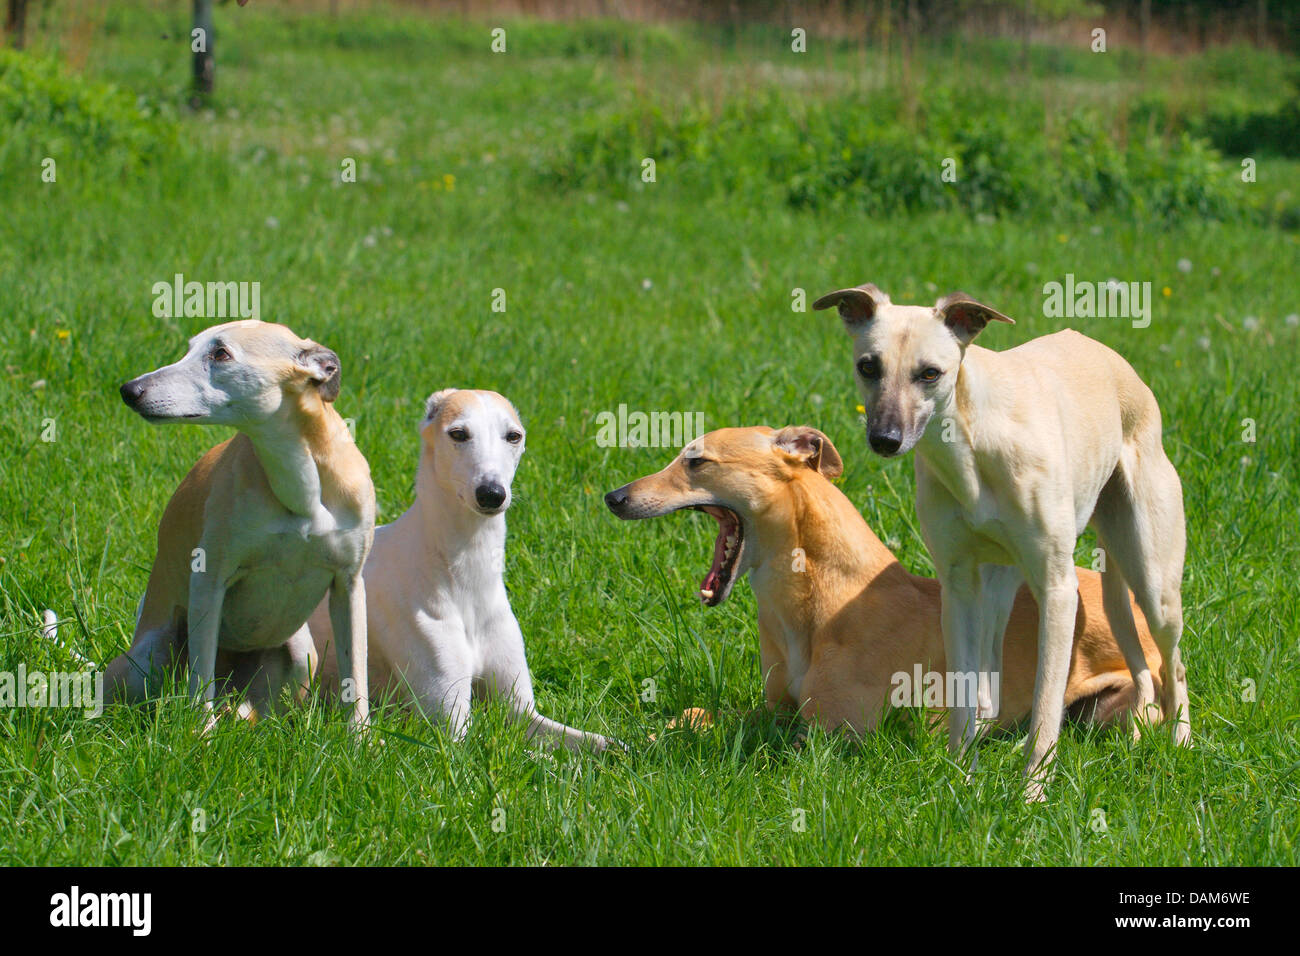 Whippet (Canis lupus f. familiaris), four Whippets in a meadow, Germany - Stock Image